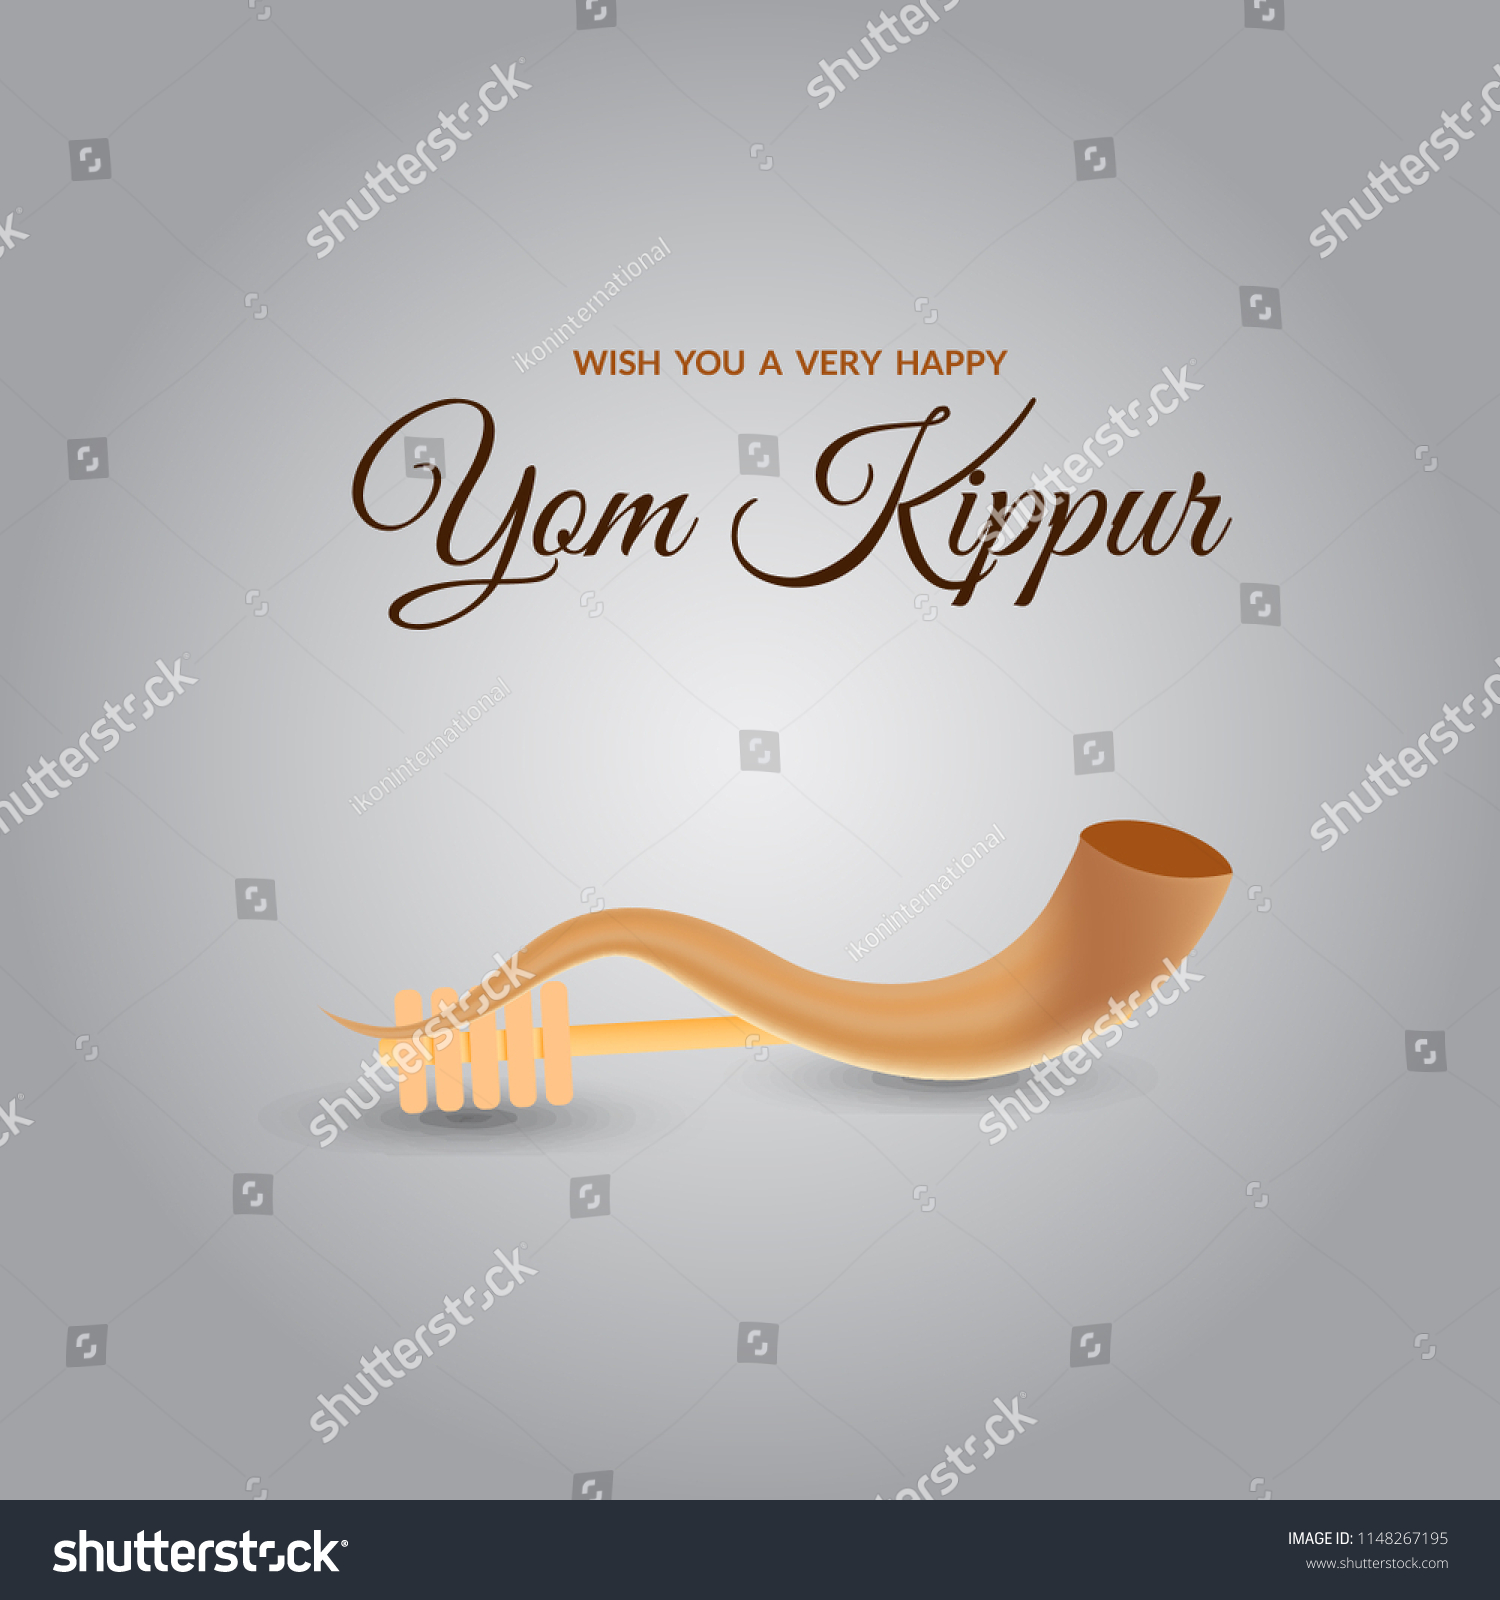 Yom Kippur Greeting Card Template Design Stock Vector Royalty Free